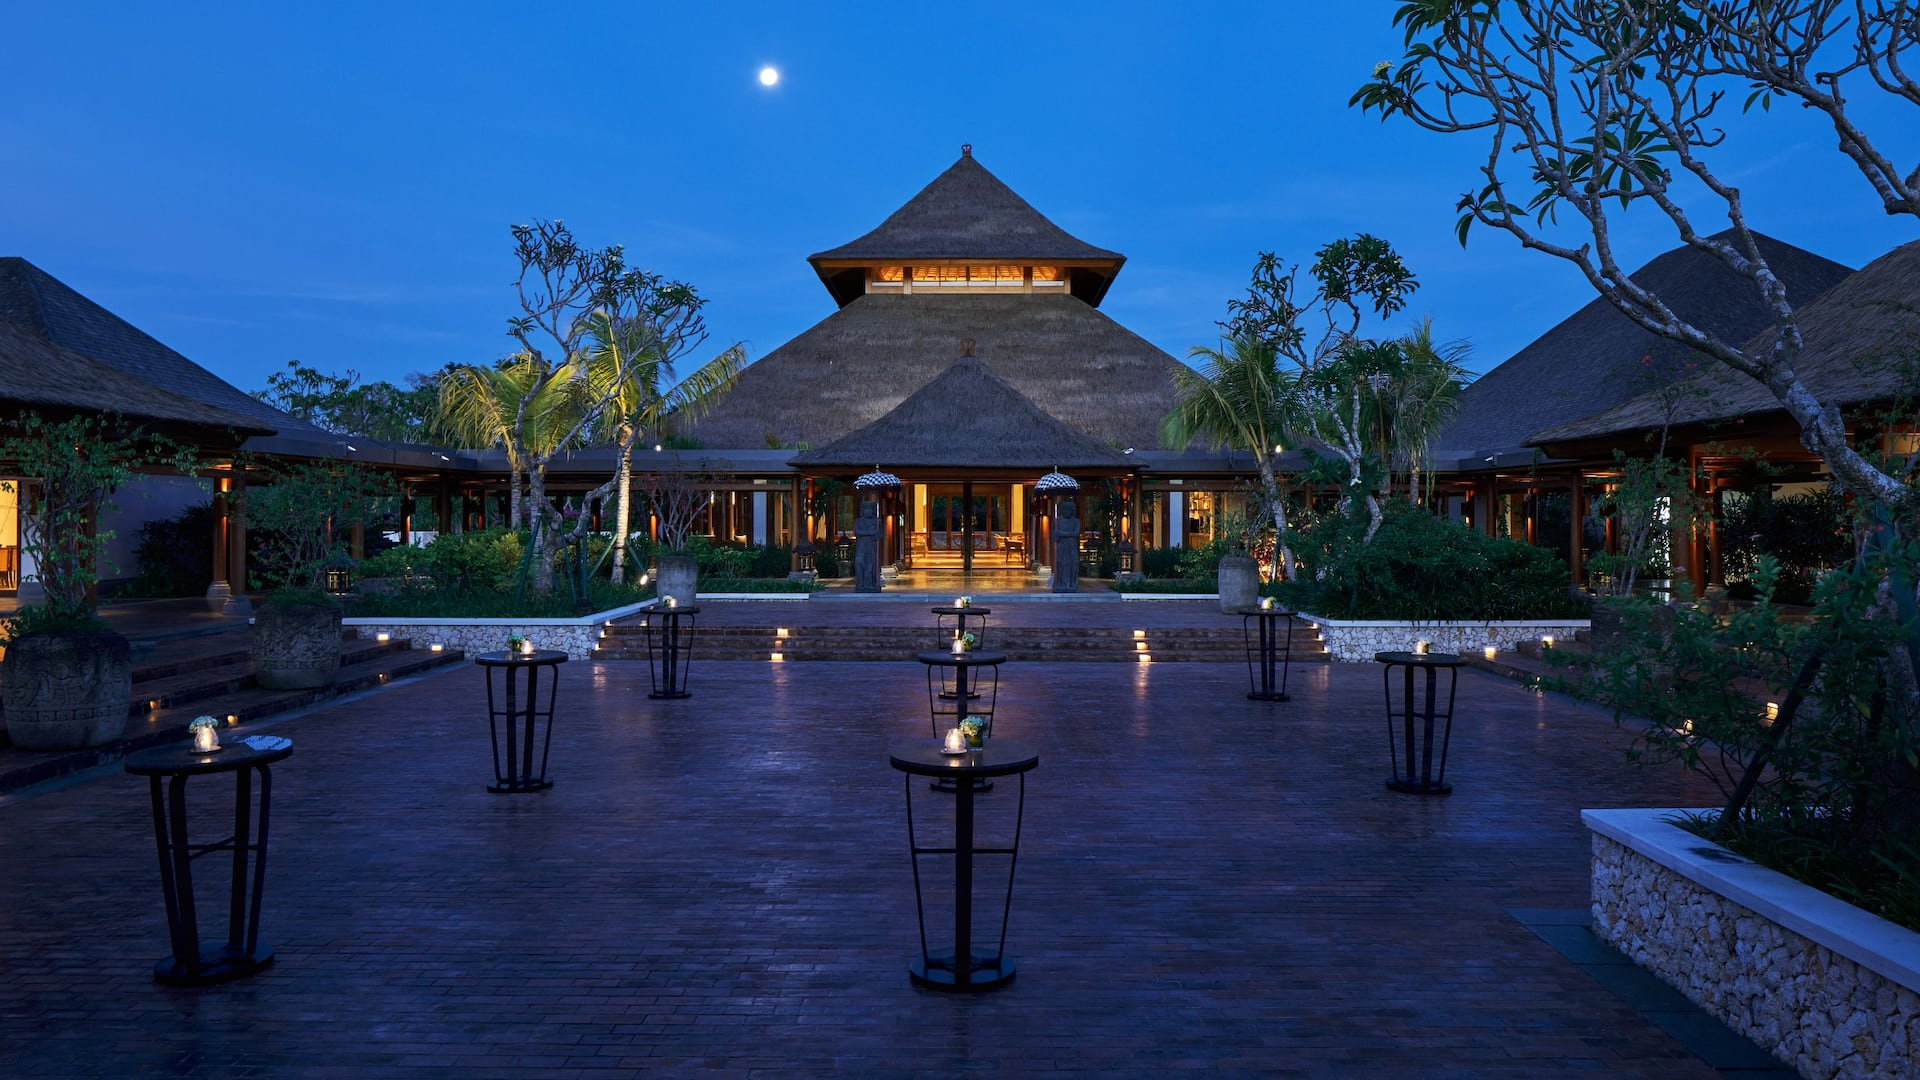 Courtyard at Hyatt Regency Bali